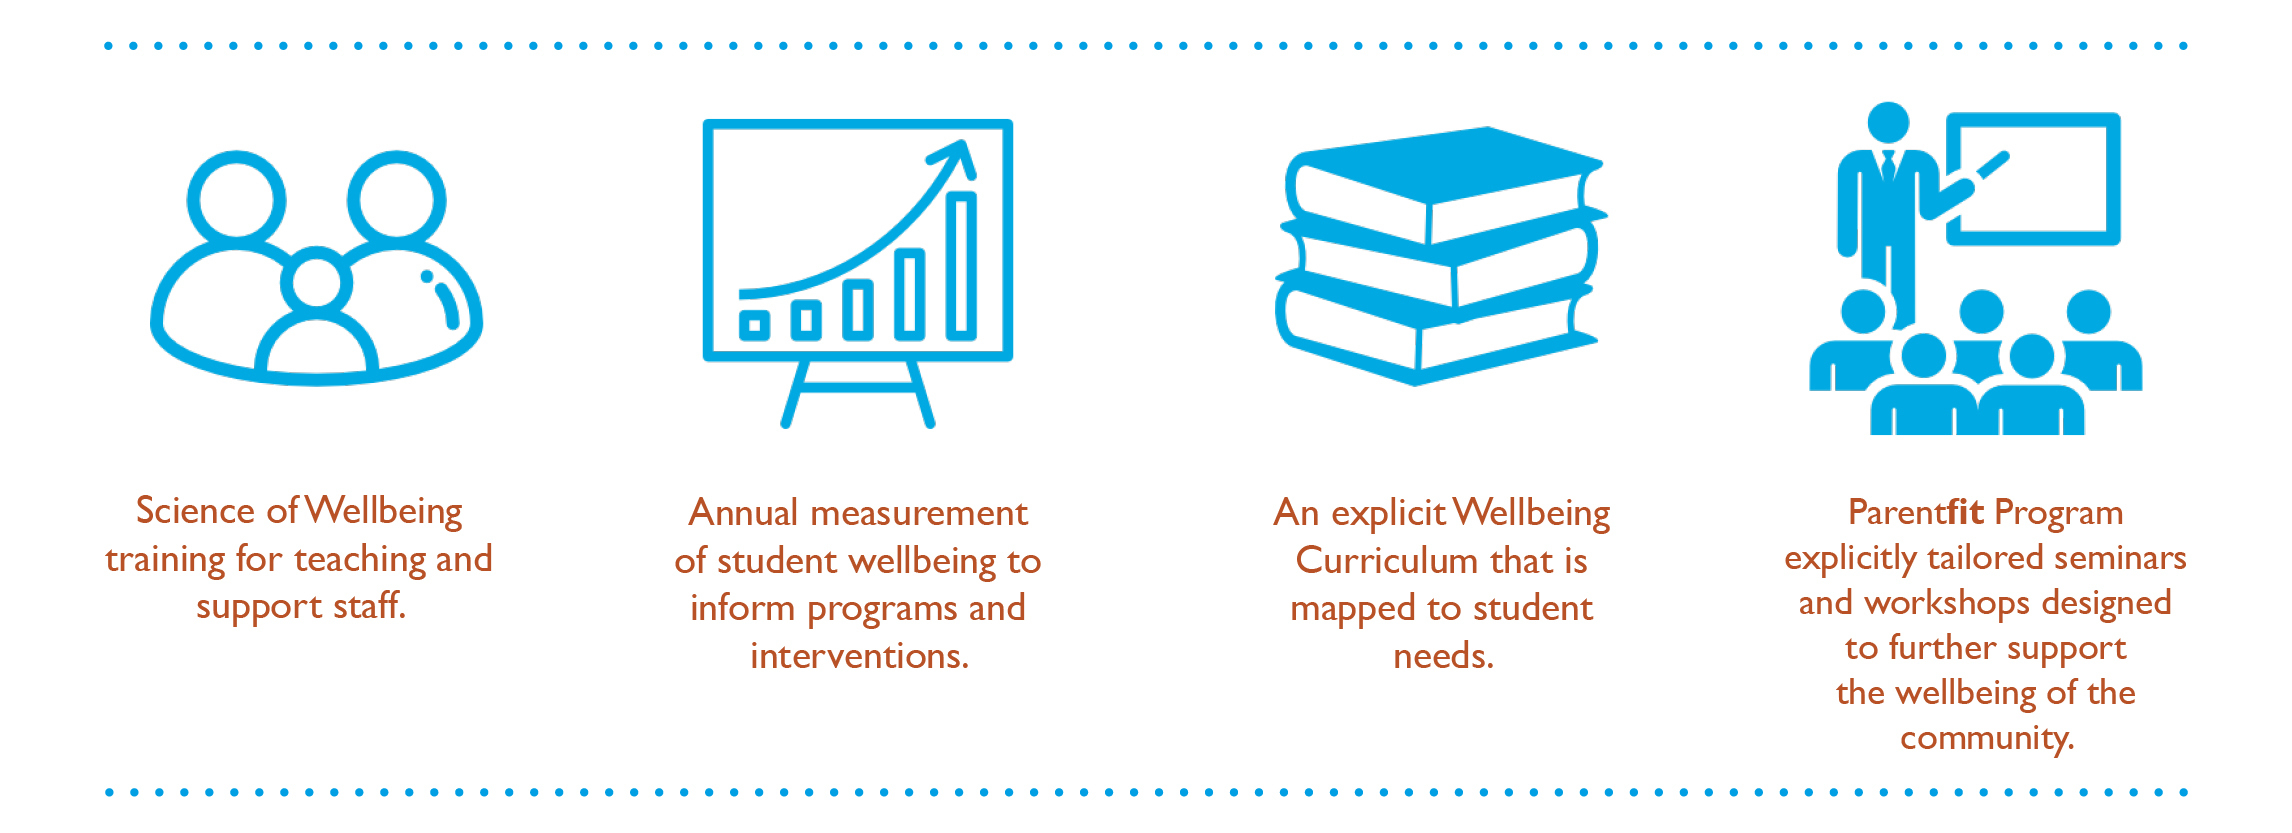 Wellbeing Strategy Infographic